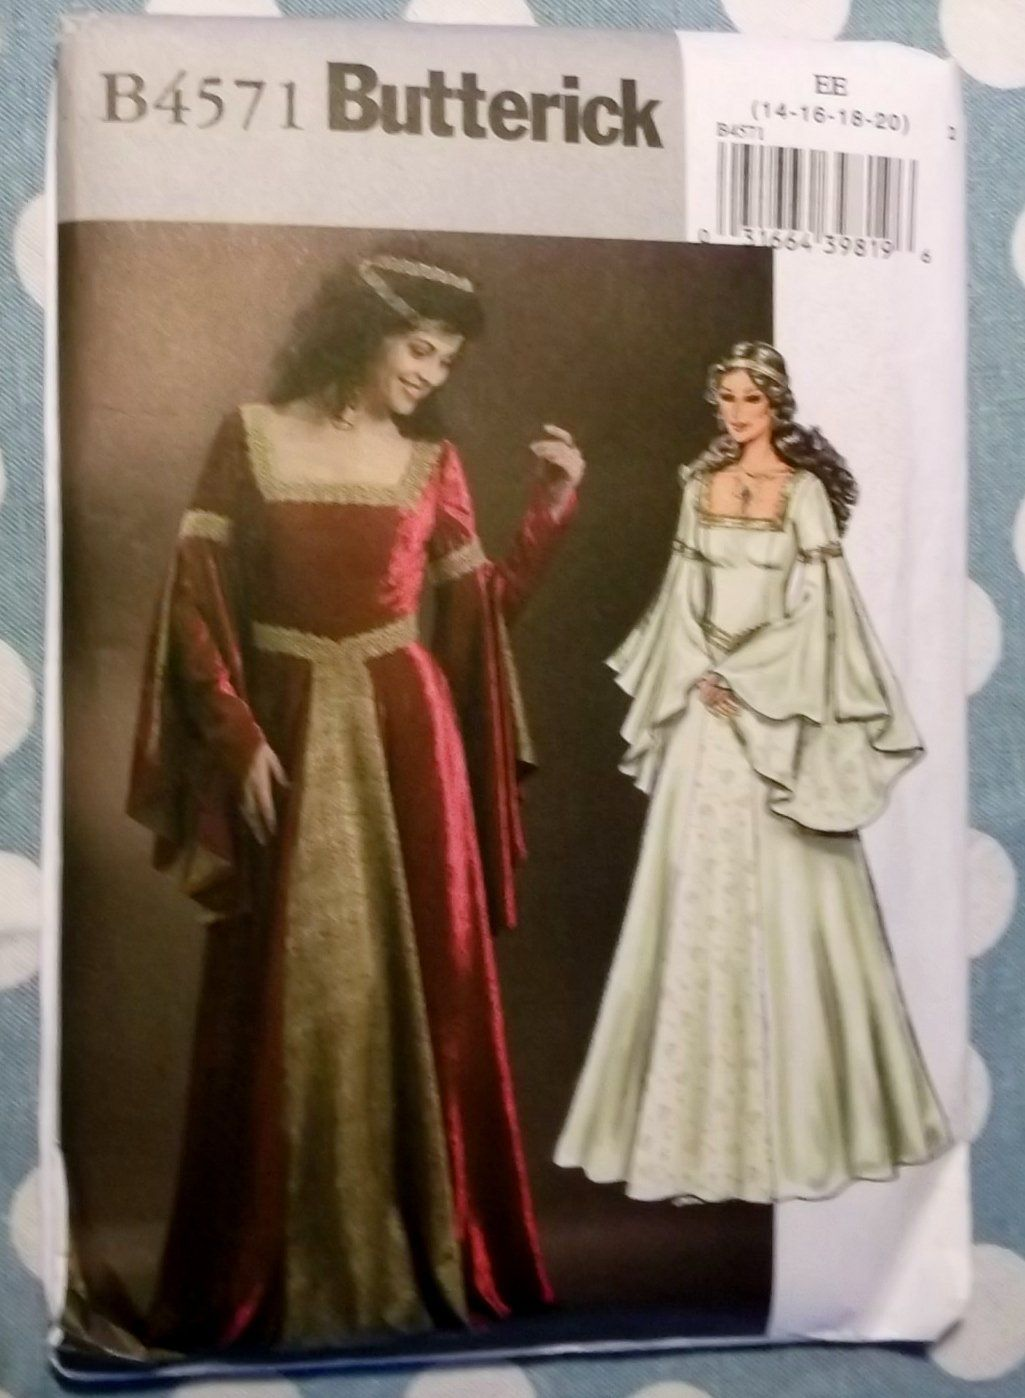 fca3932eeb0 Misses+Costume+Renaissance+Dress+Butterick+B+4571+Pattern